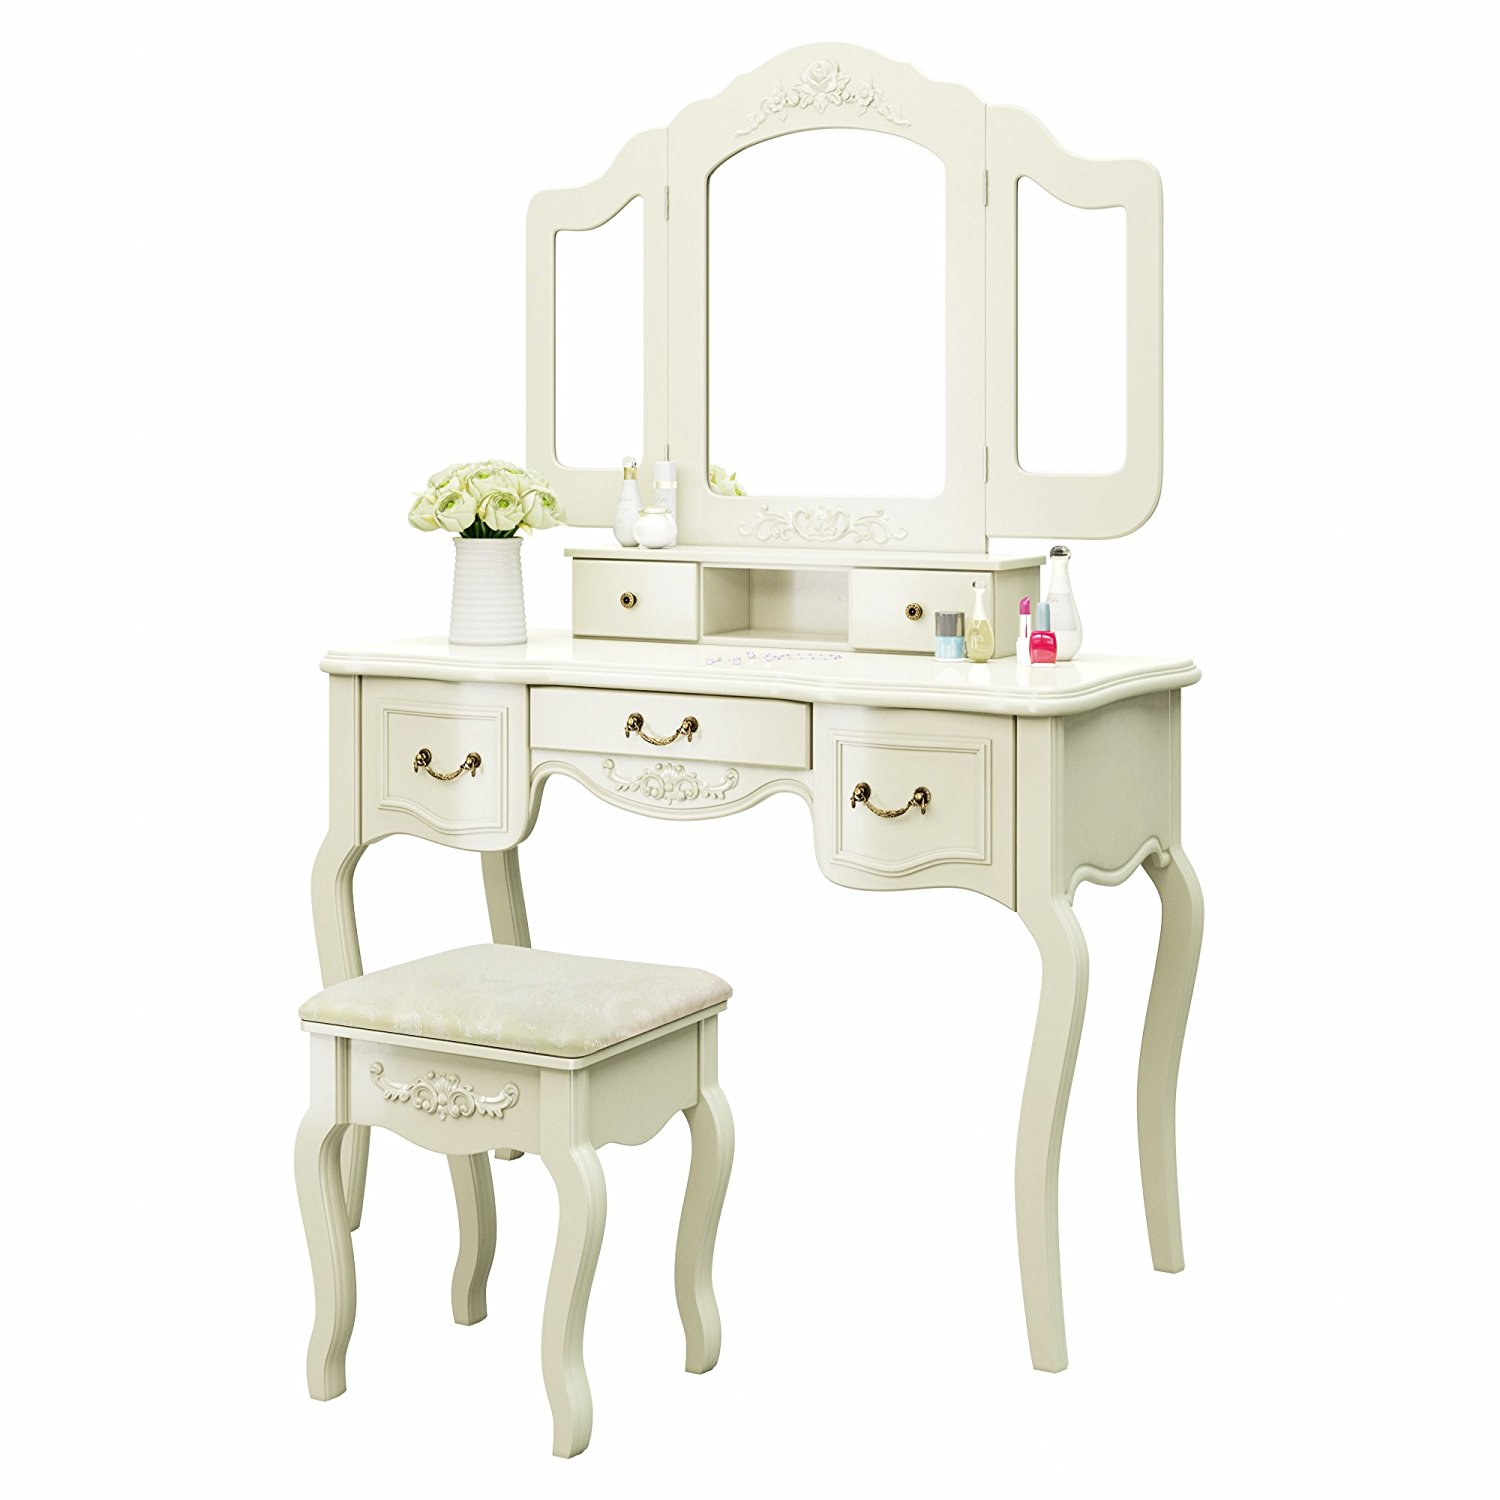 Dressing Tables  Mirrored Dressing Tables amp Stools  MampS